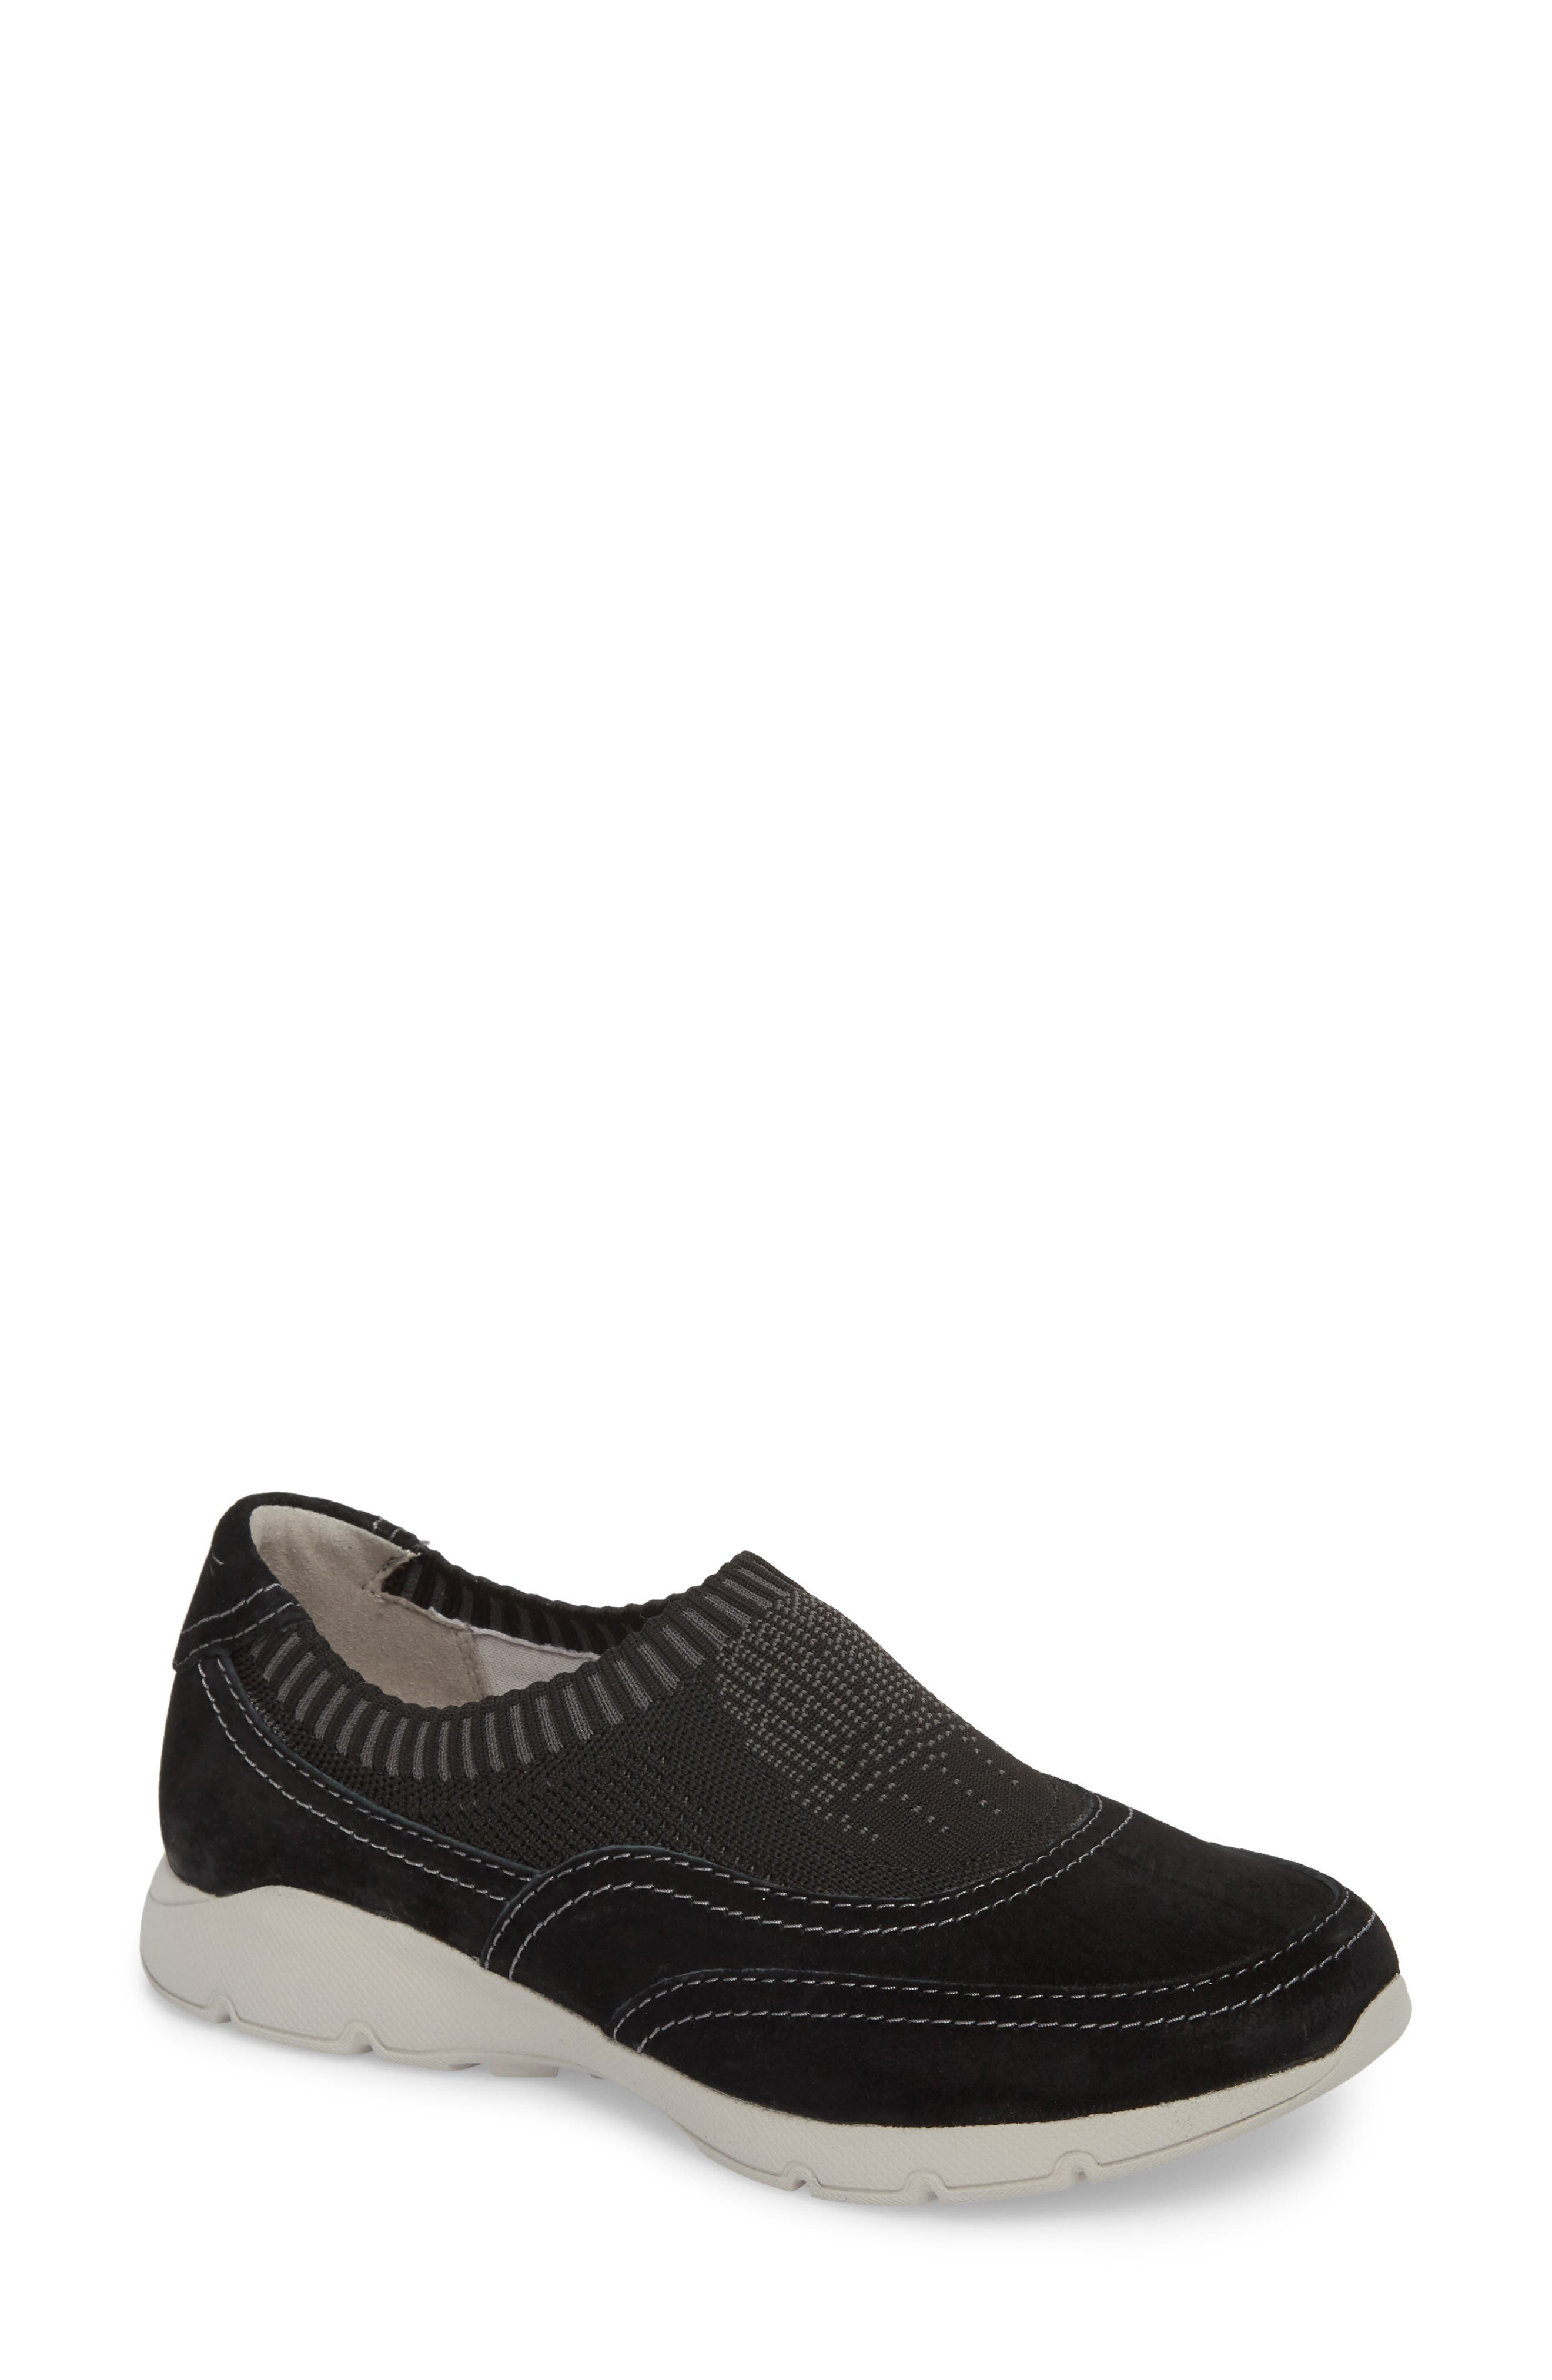 Alice Slip-On Sneaker,                             Main thumbnail 1, color,                             BLACK SUEDE